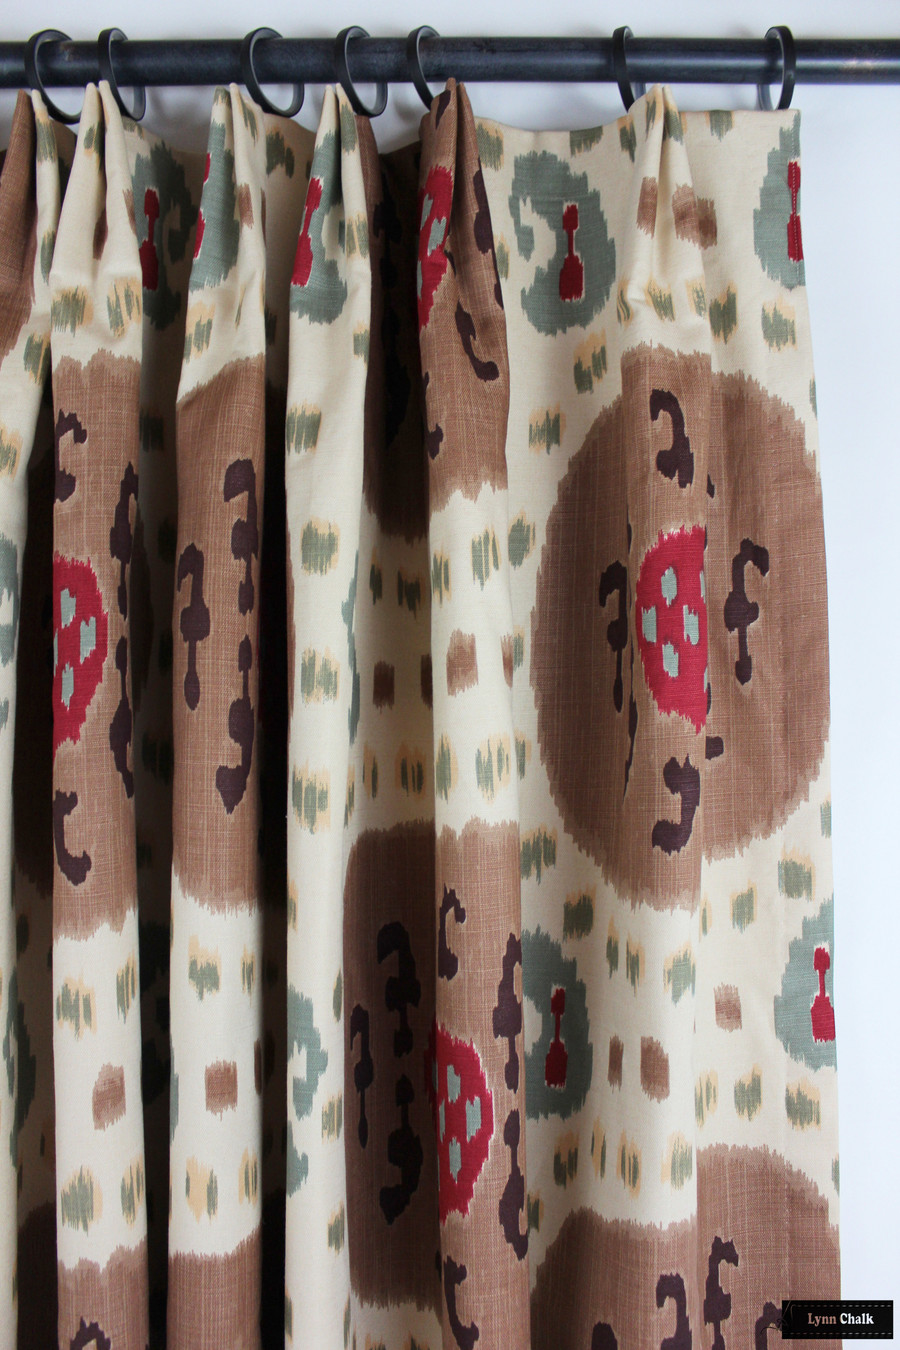 Custom Drapes in Samarkand Cotton and Linen Print Brown on Beige BR-71110 08